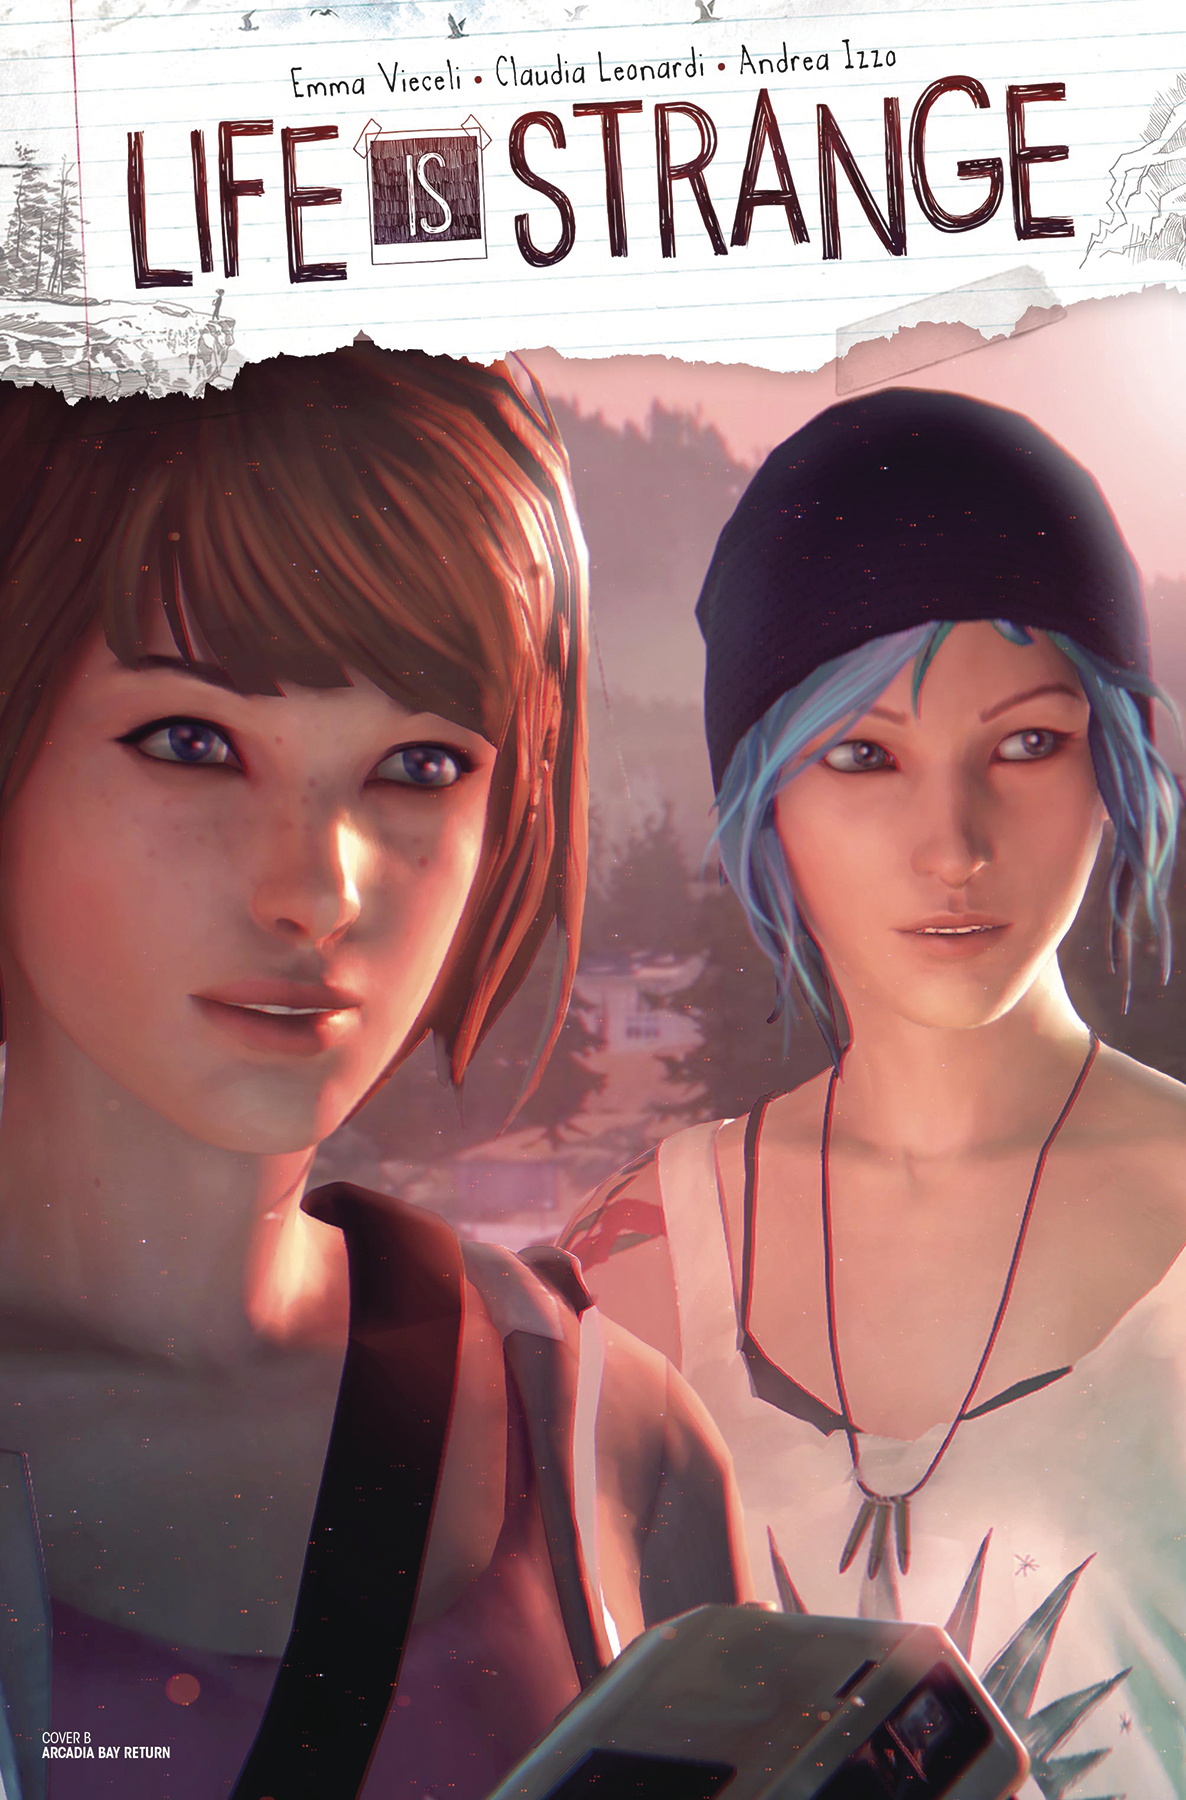 LIFE IS STRANGE #2 CVR B GAME ART